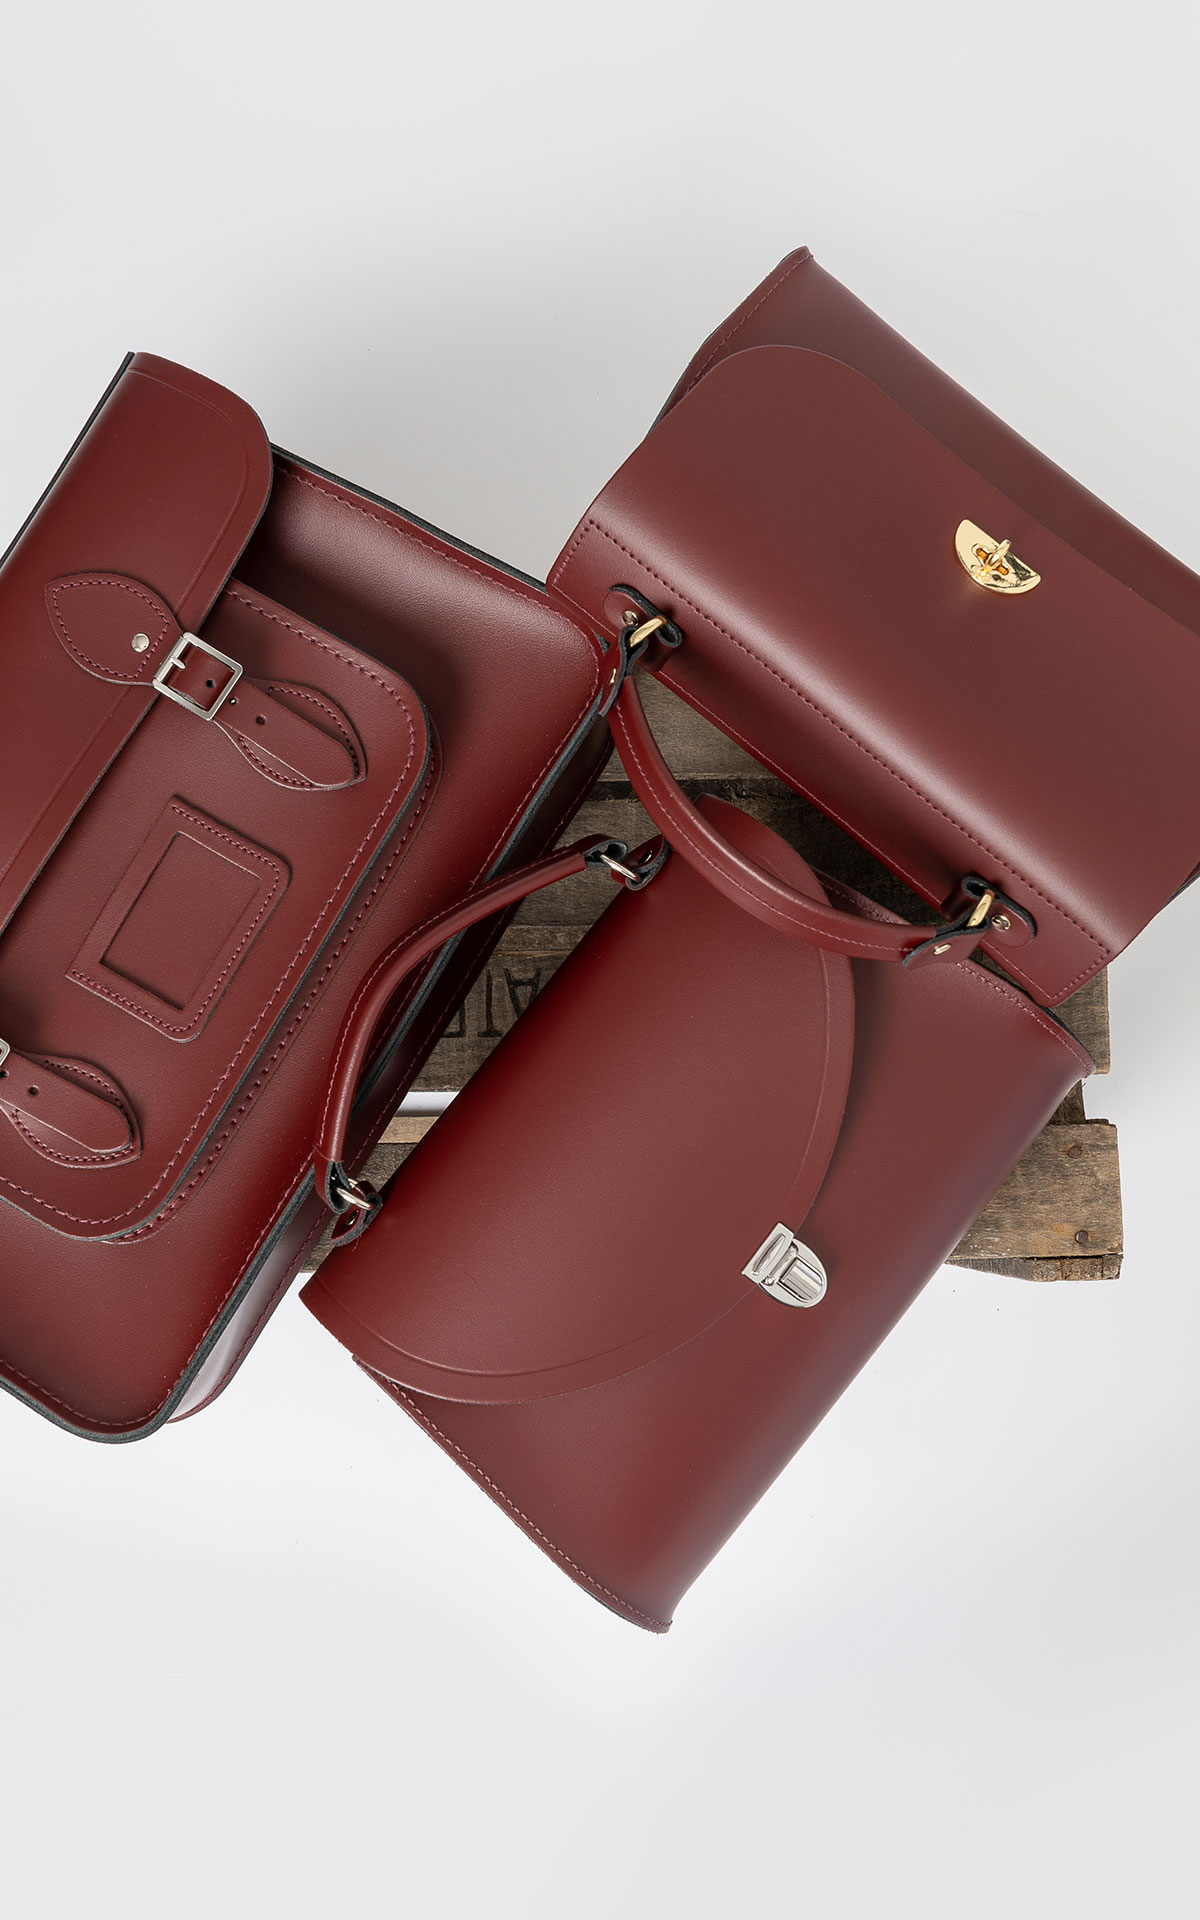 The Cambridge Satchel Company Bicester Village Brand Image